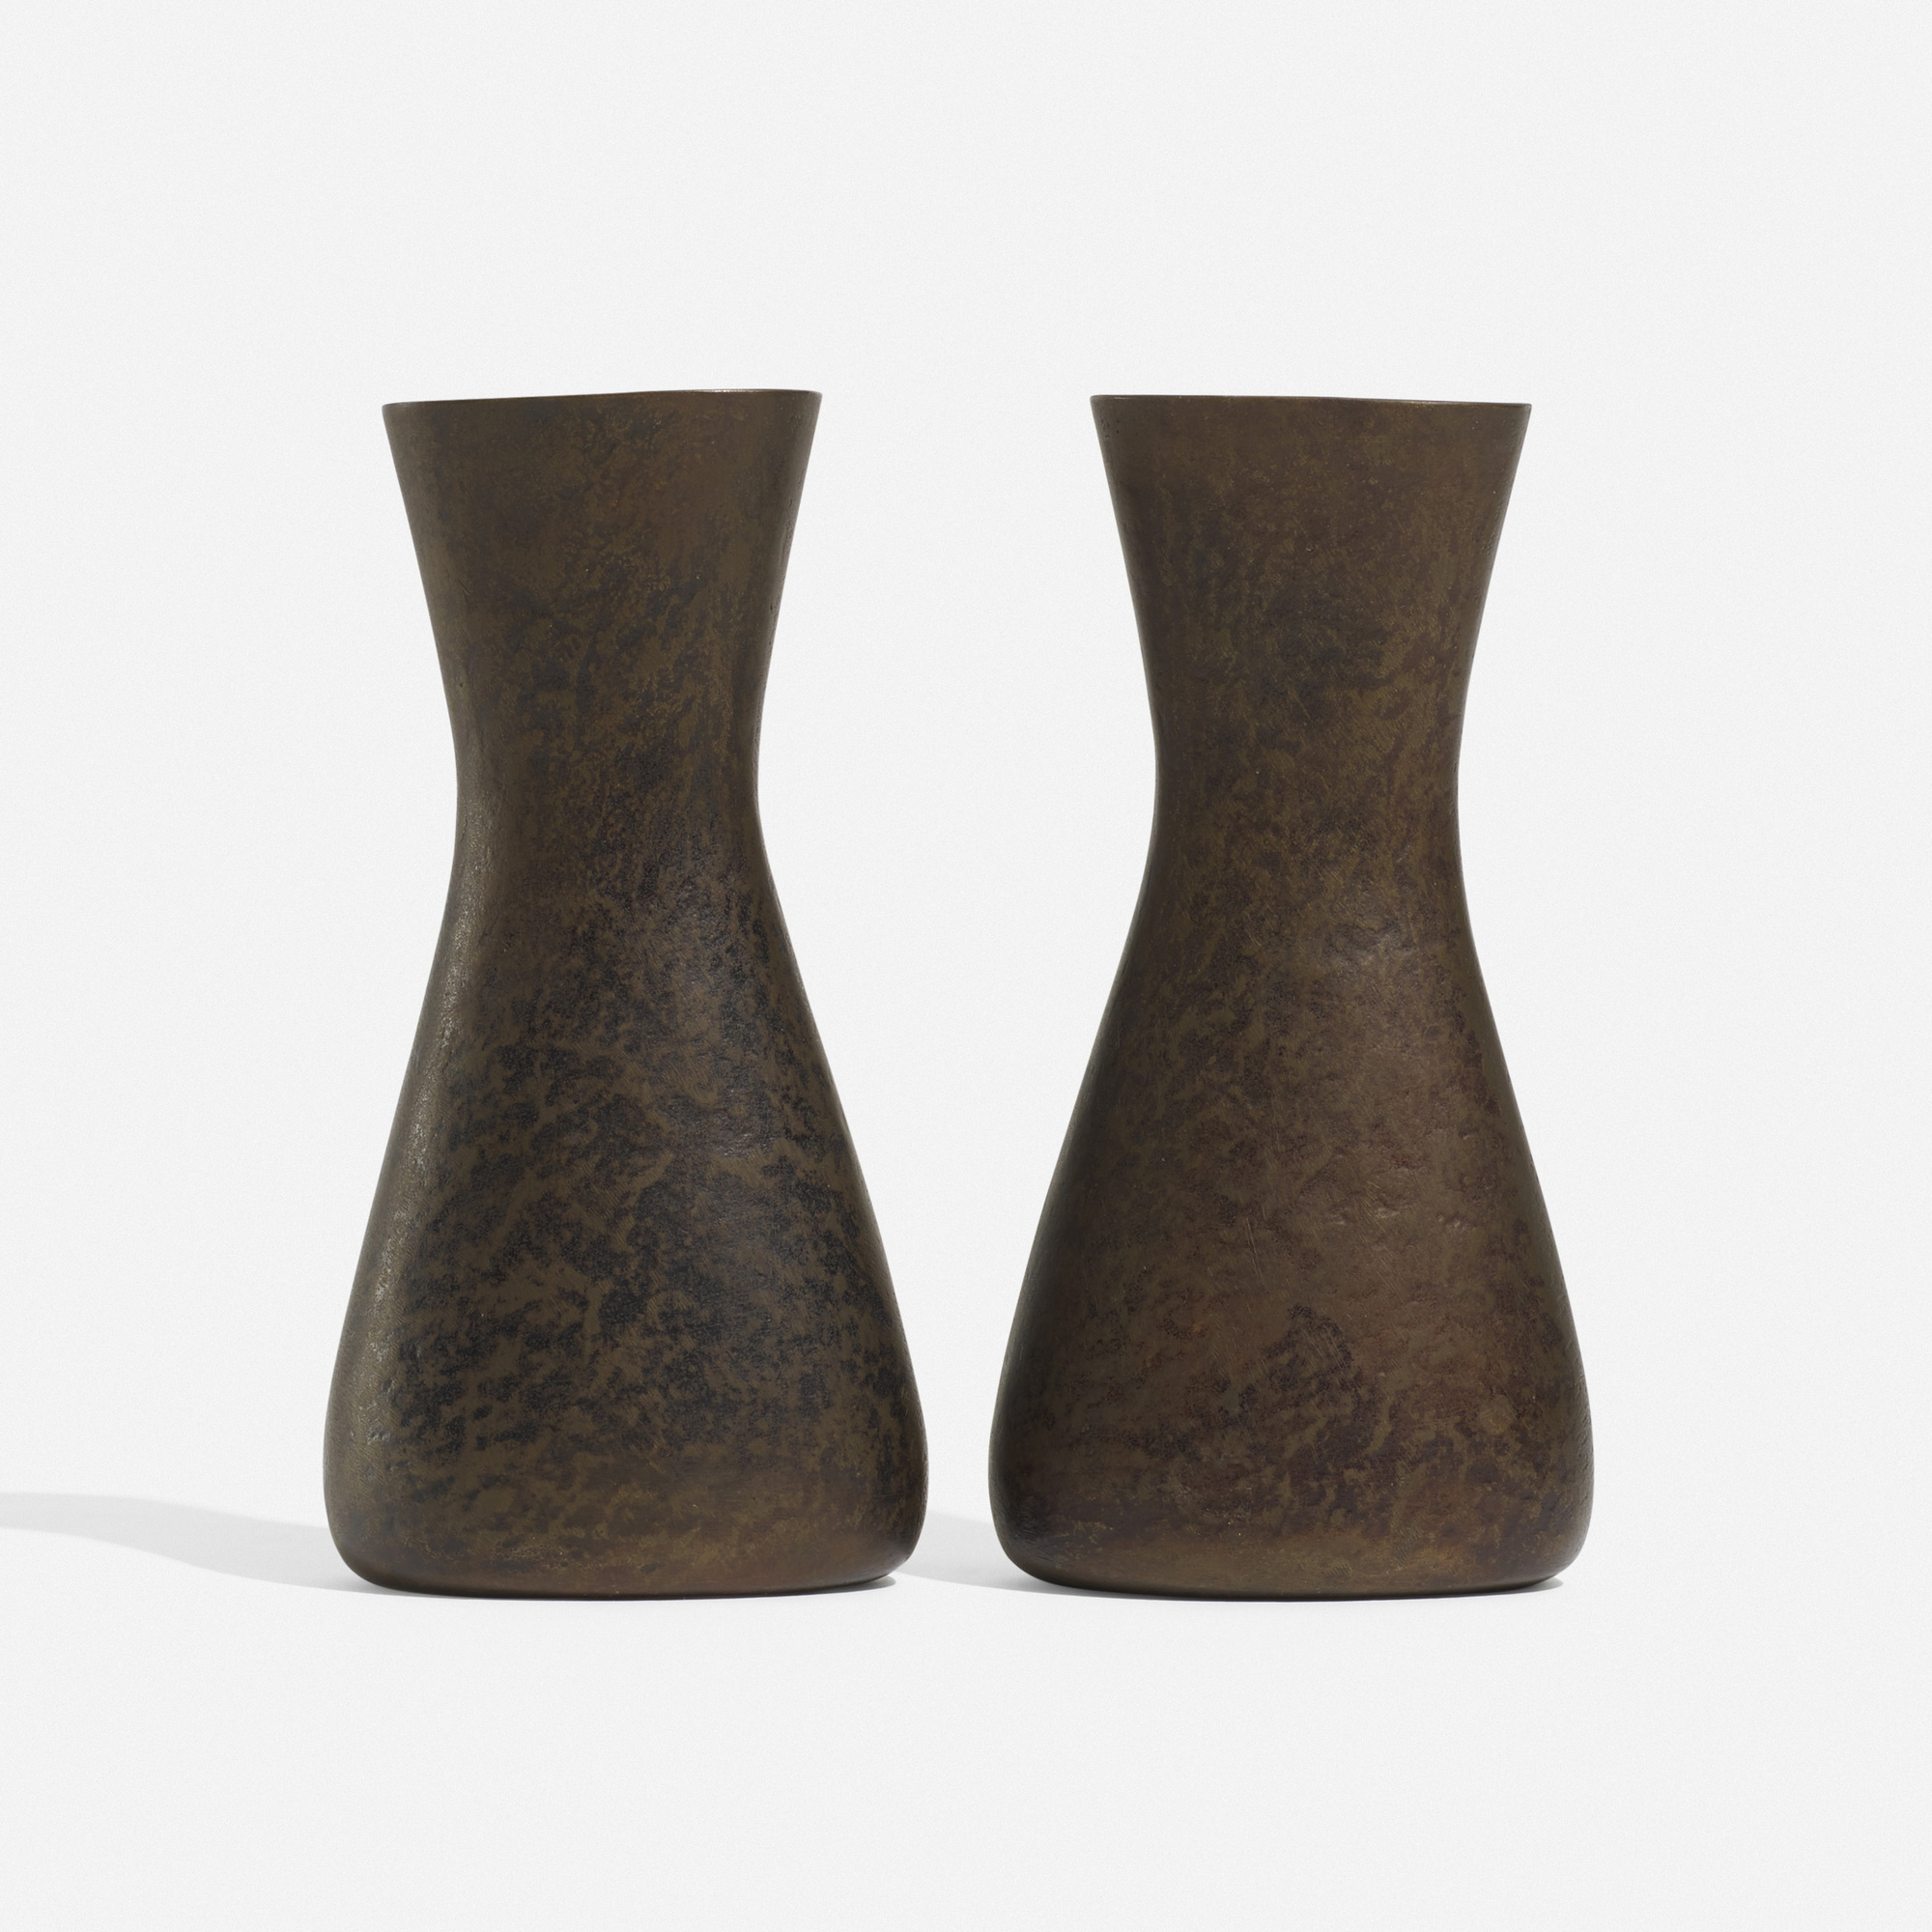 113: Carl Auböck II / vases, pair (1 of 2)